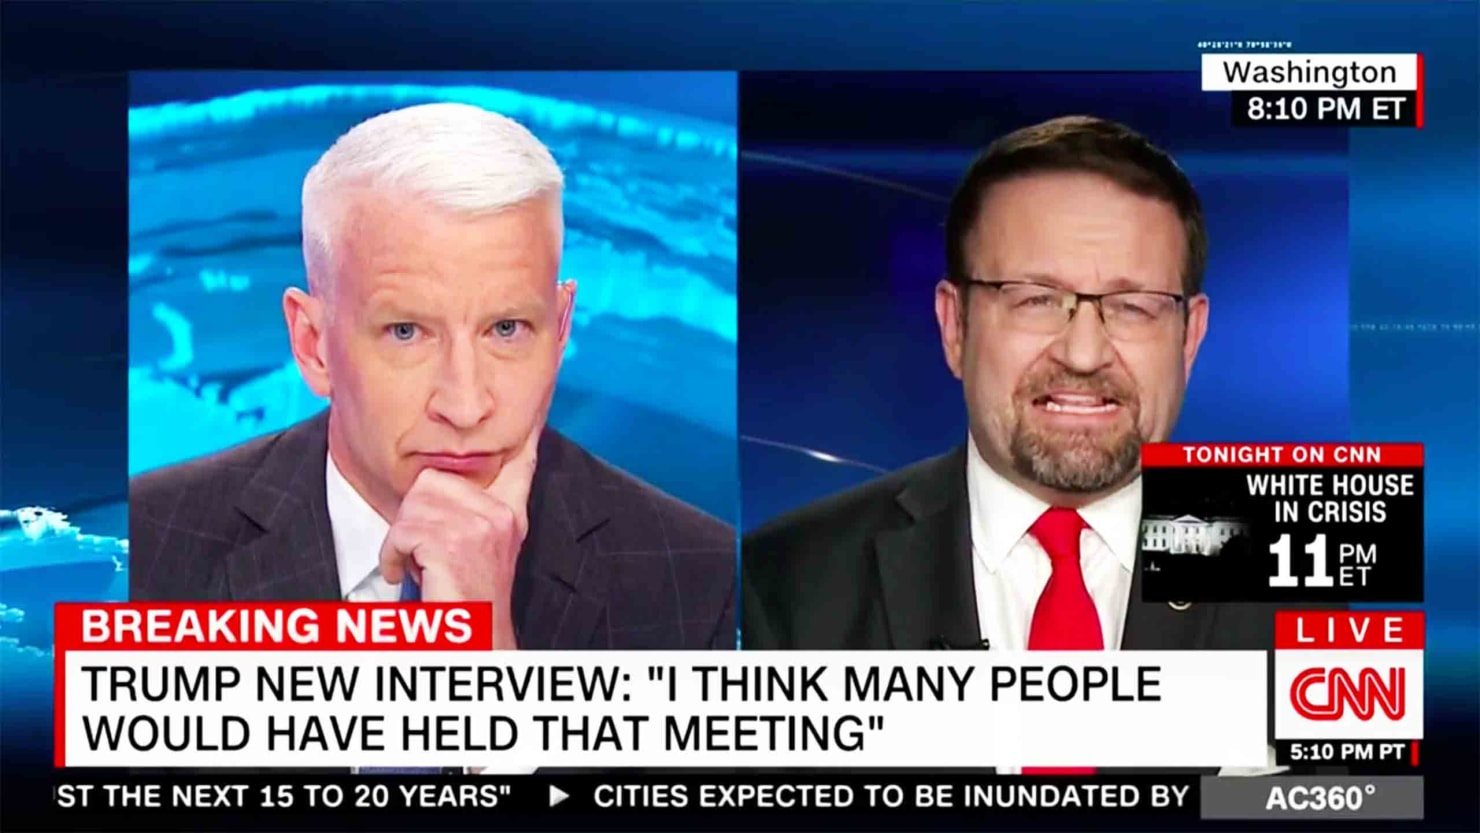 CNN World News Picture: Watch: Seb Gorka Baffles Anderson Cooper With Alternative